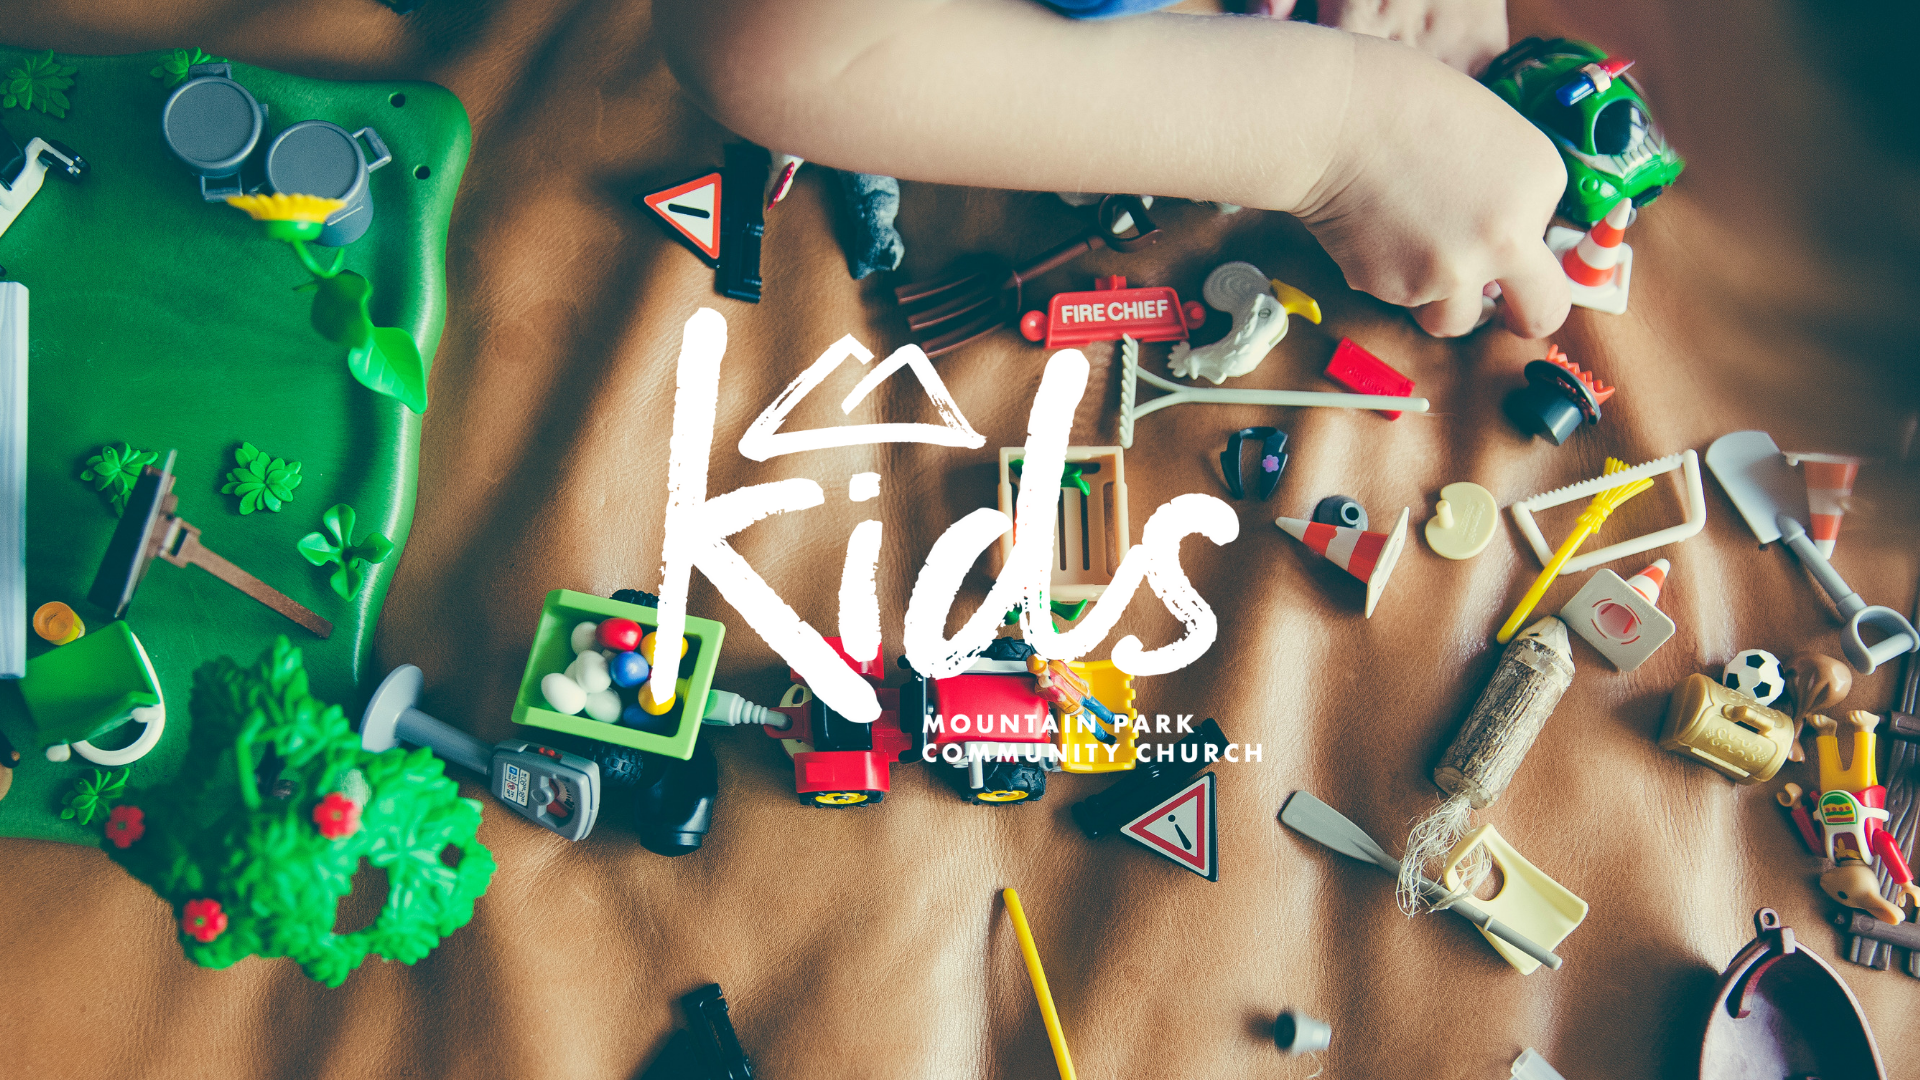 Copy of kids cover 2.png